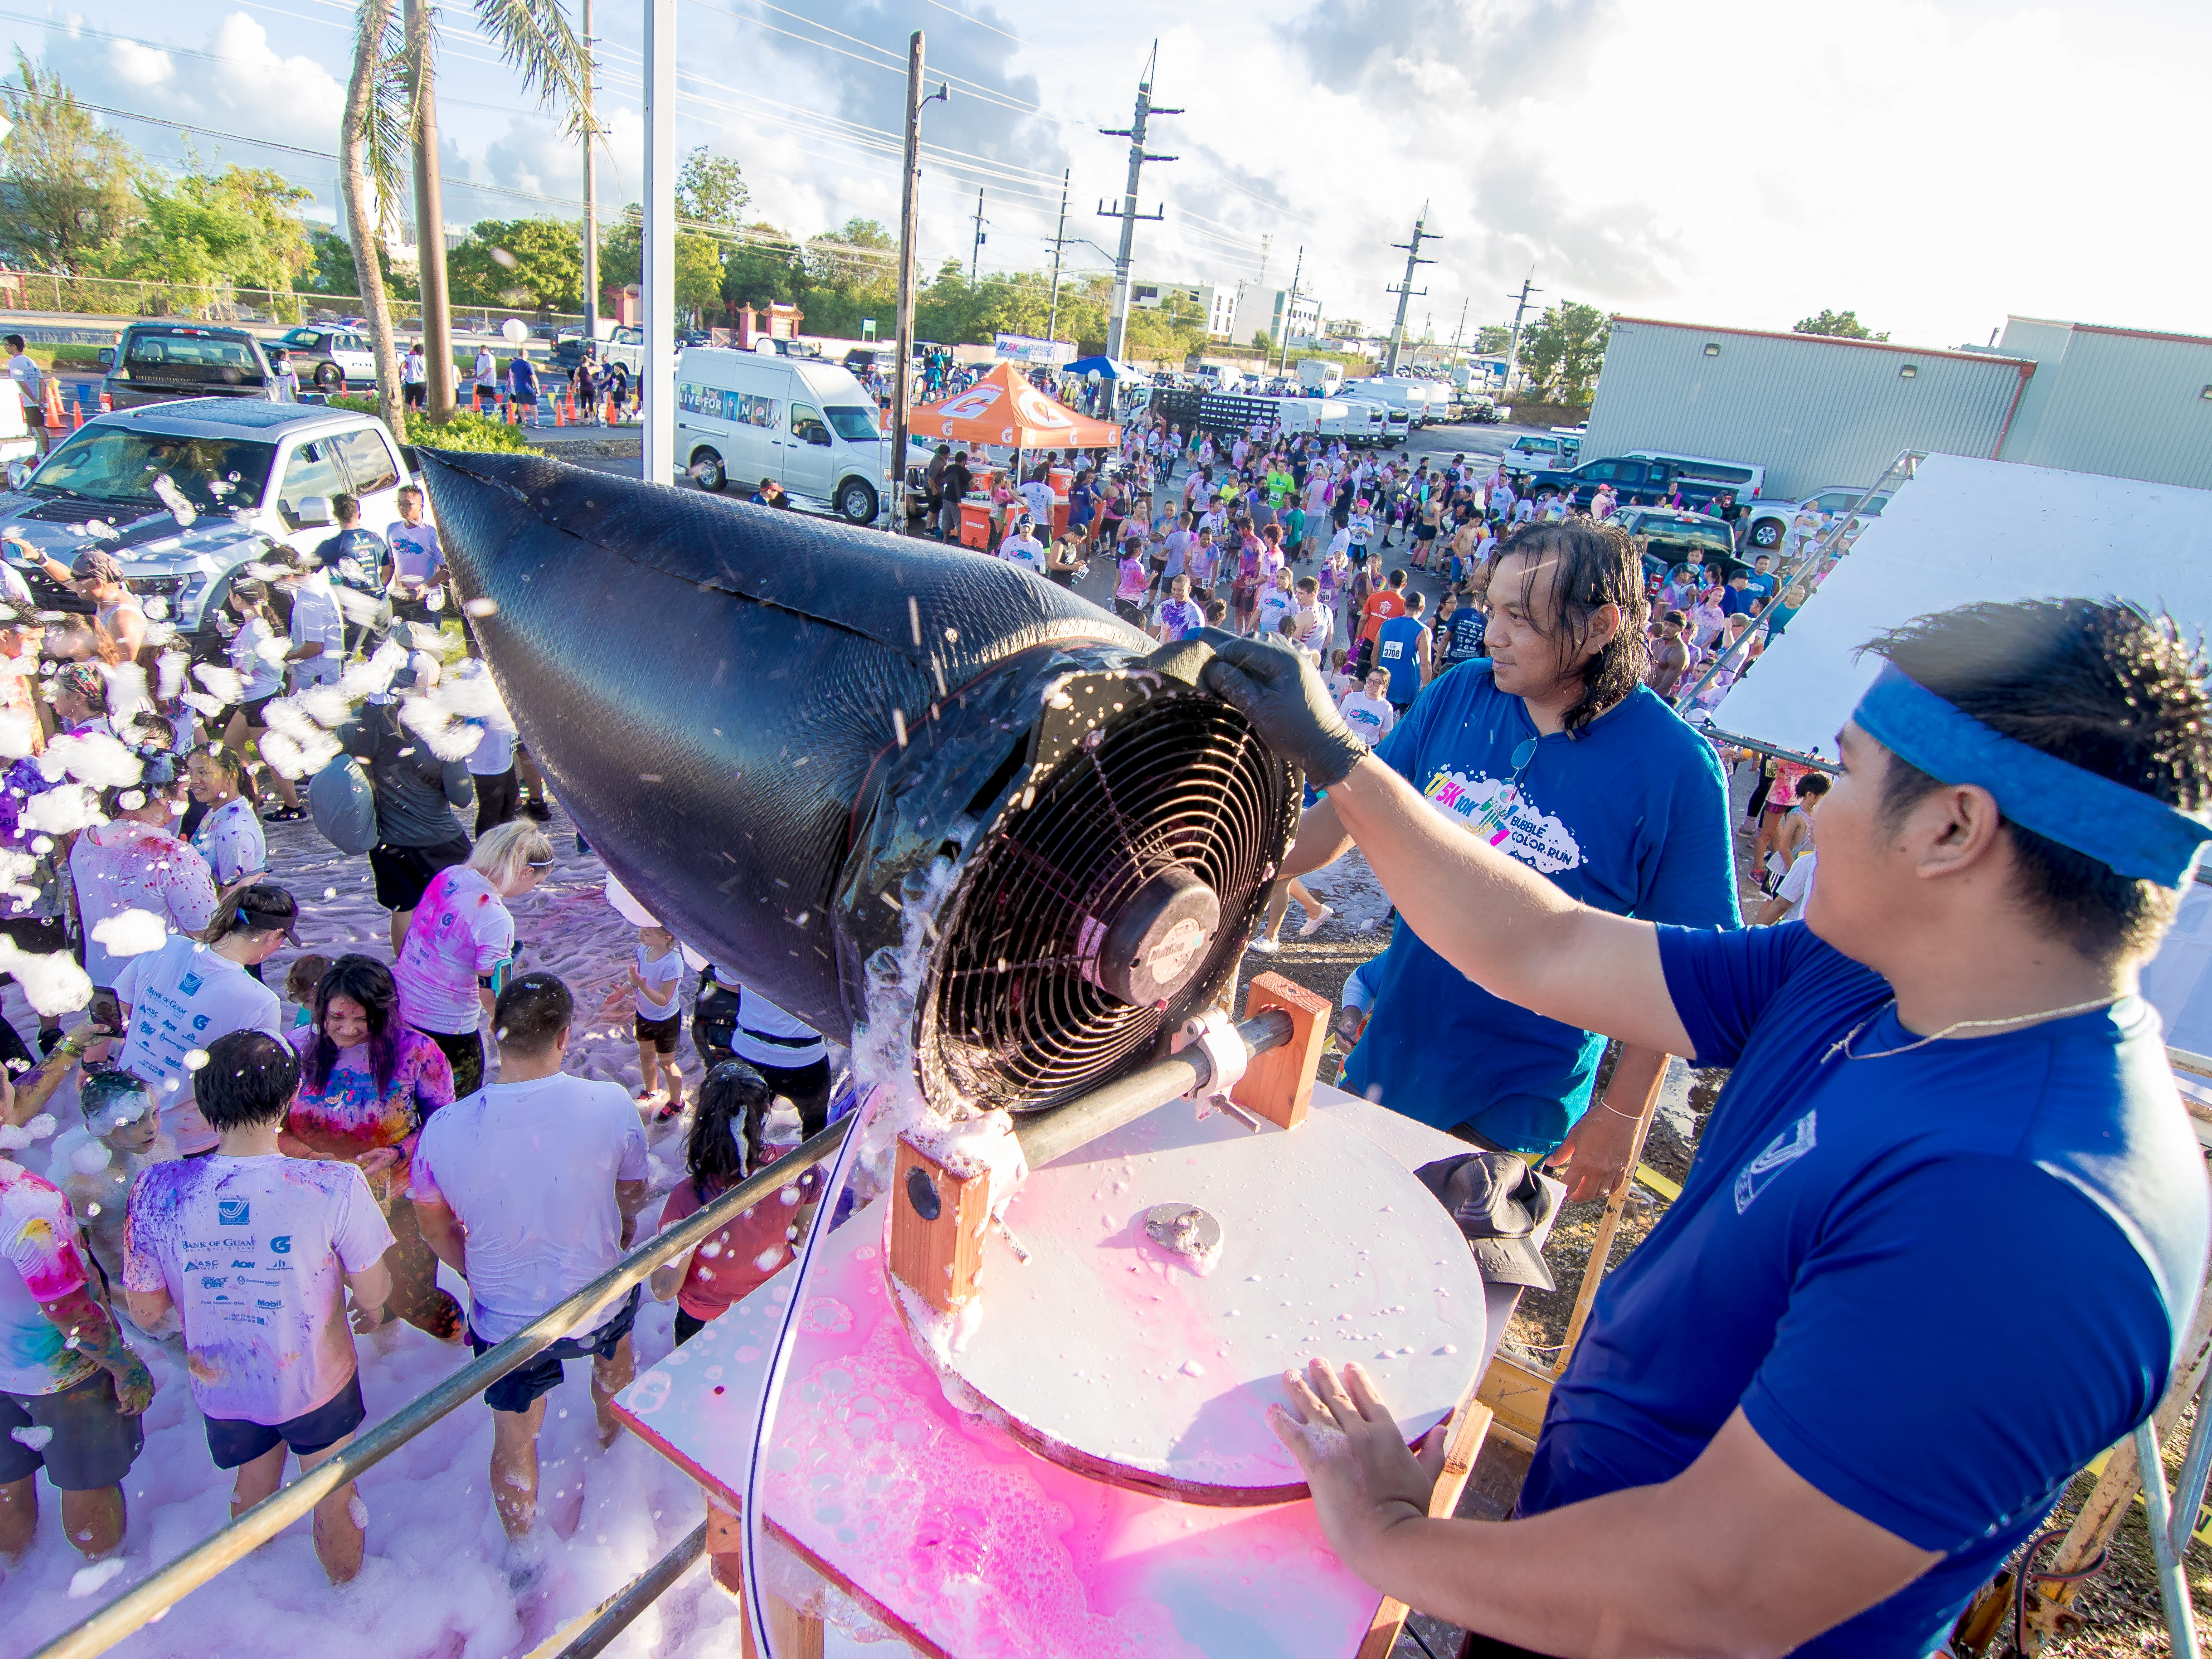 """Anthony Calip operates the bubble foam sprayer as his coworker Anthony Villanueva looks on during the 13th Annual Triple J Family 10K/5K Run themed the """"Bubble Color Run"""" held  at Tripple J Complex in Tamuning on Nov.17.Virgilio Valencia /For Pacific Daily News"""